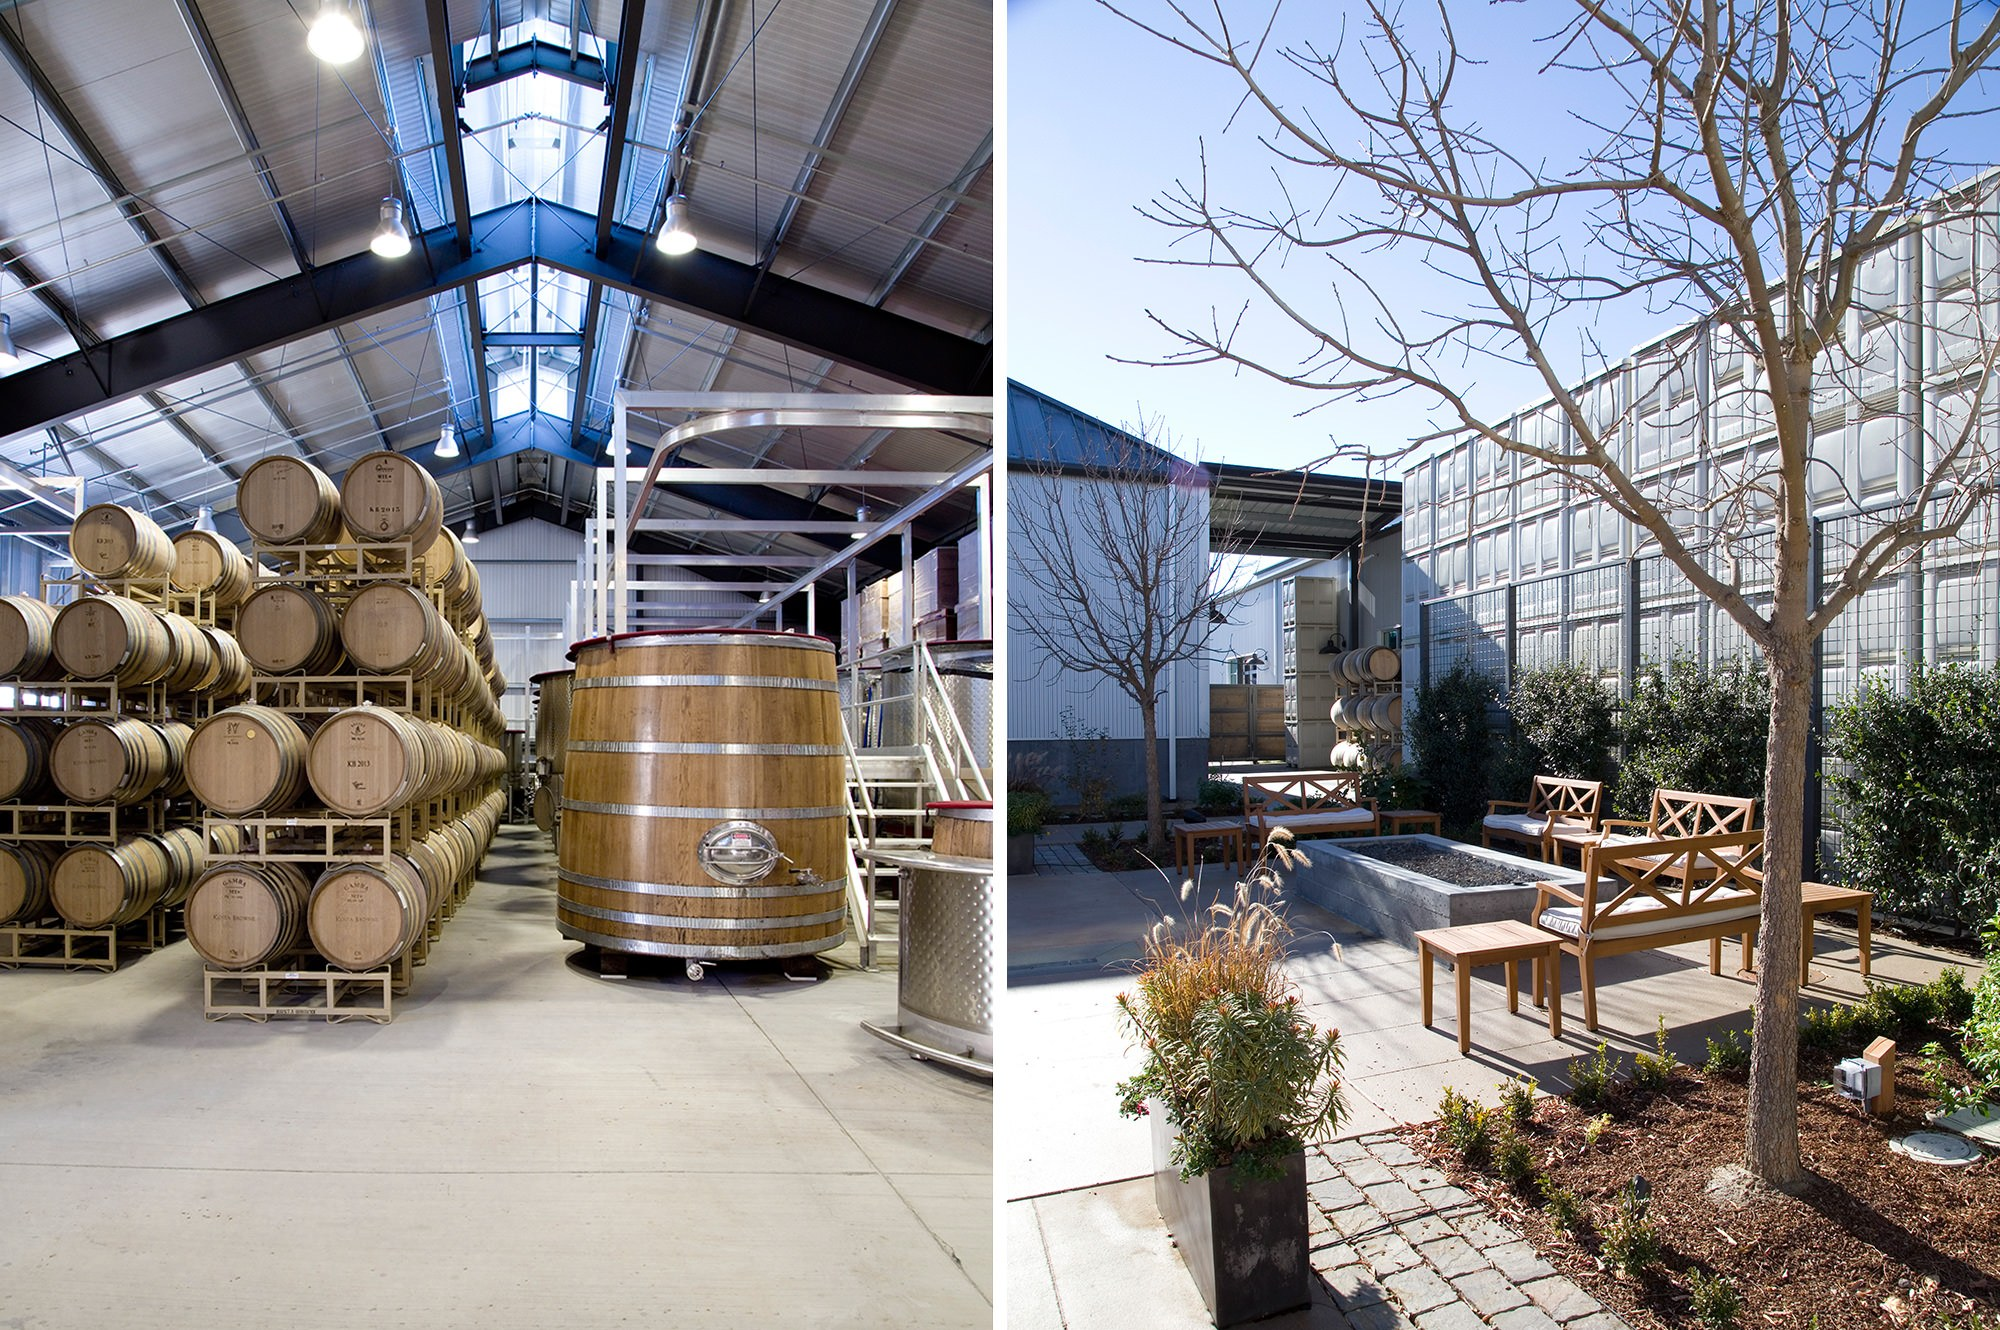 Wine storage and outdoor patio at Kosta Browne Winery